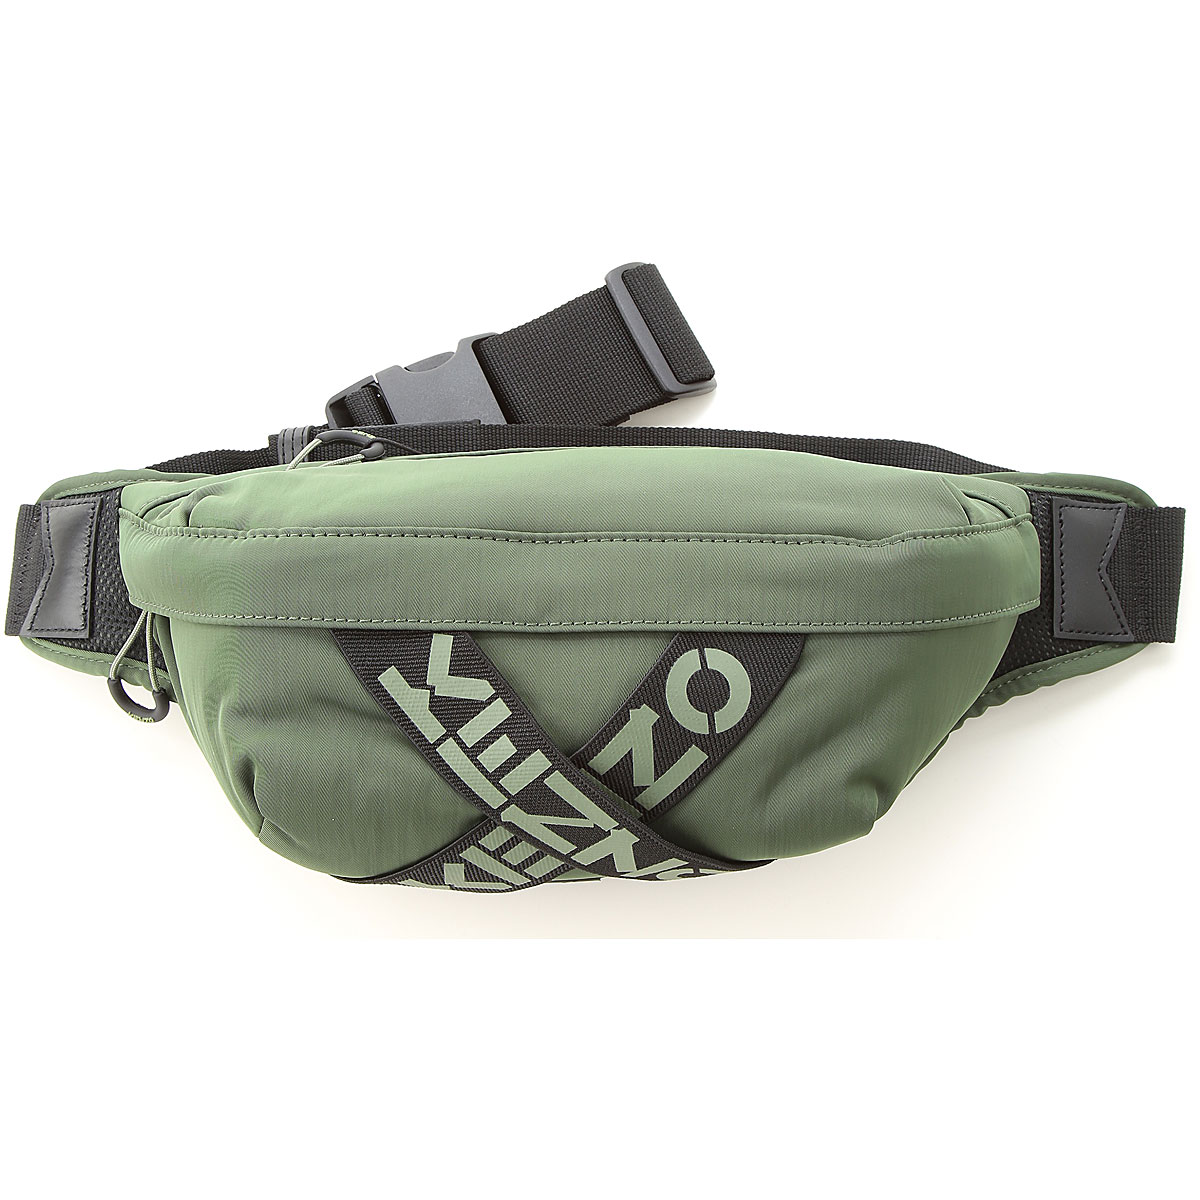 Kenzo Briefcases, Military Green, polyester, 2019